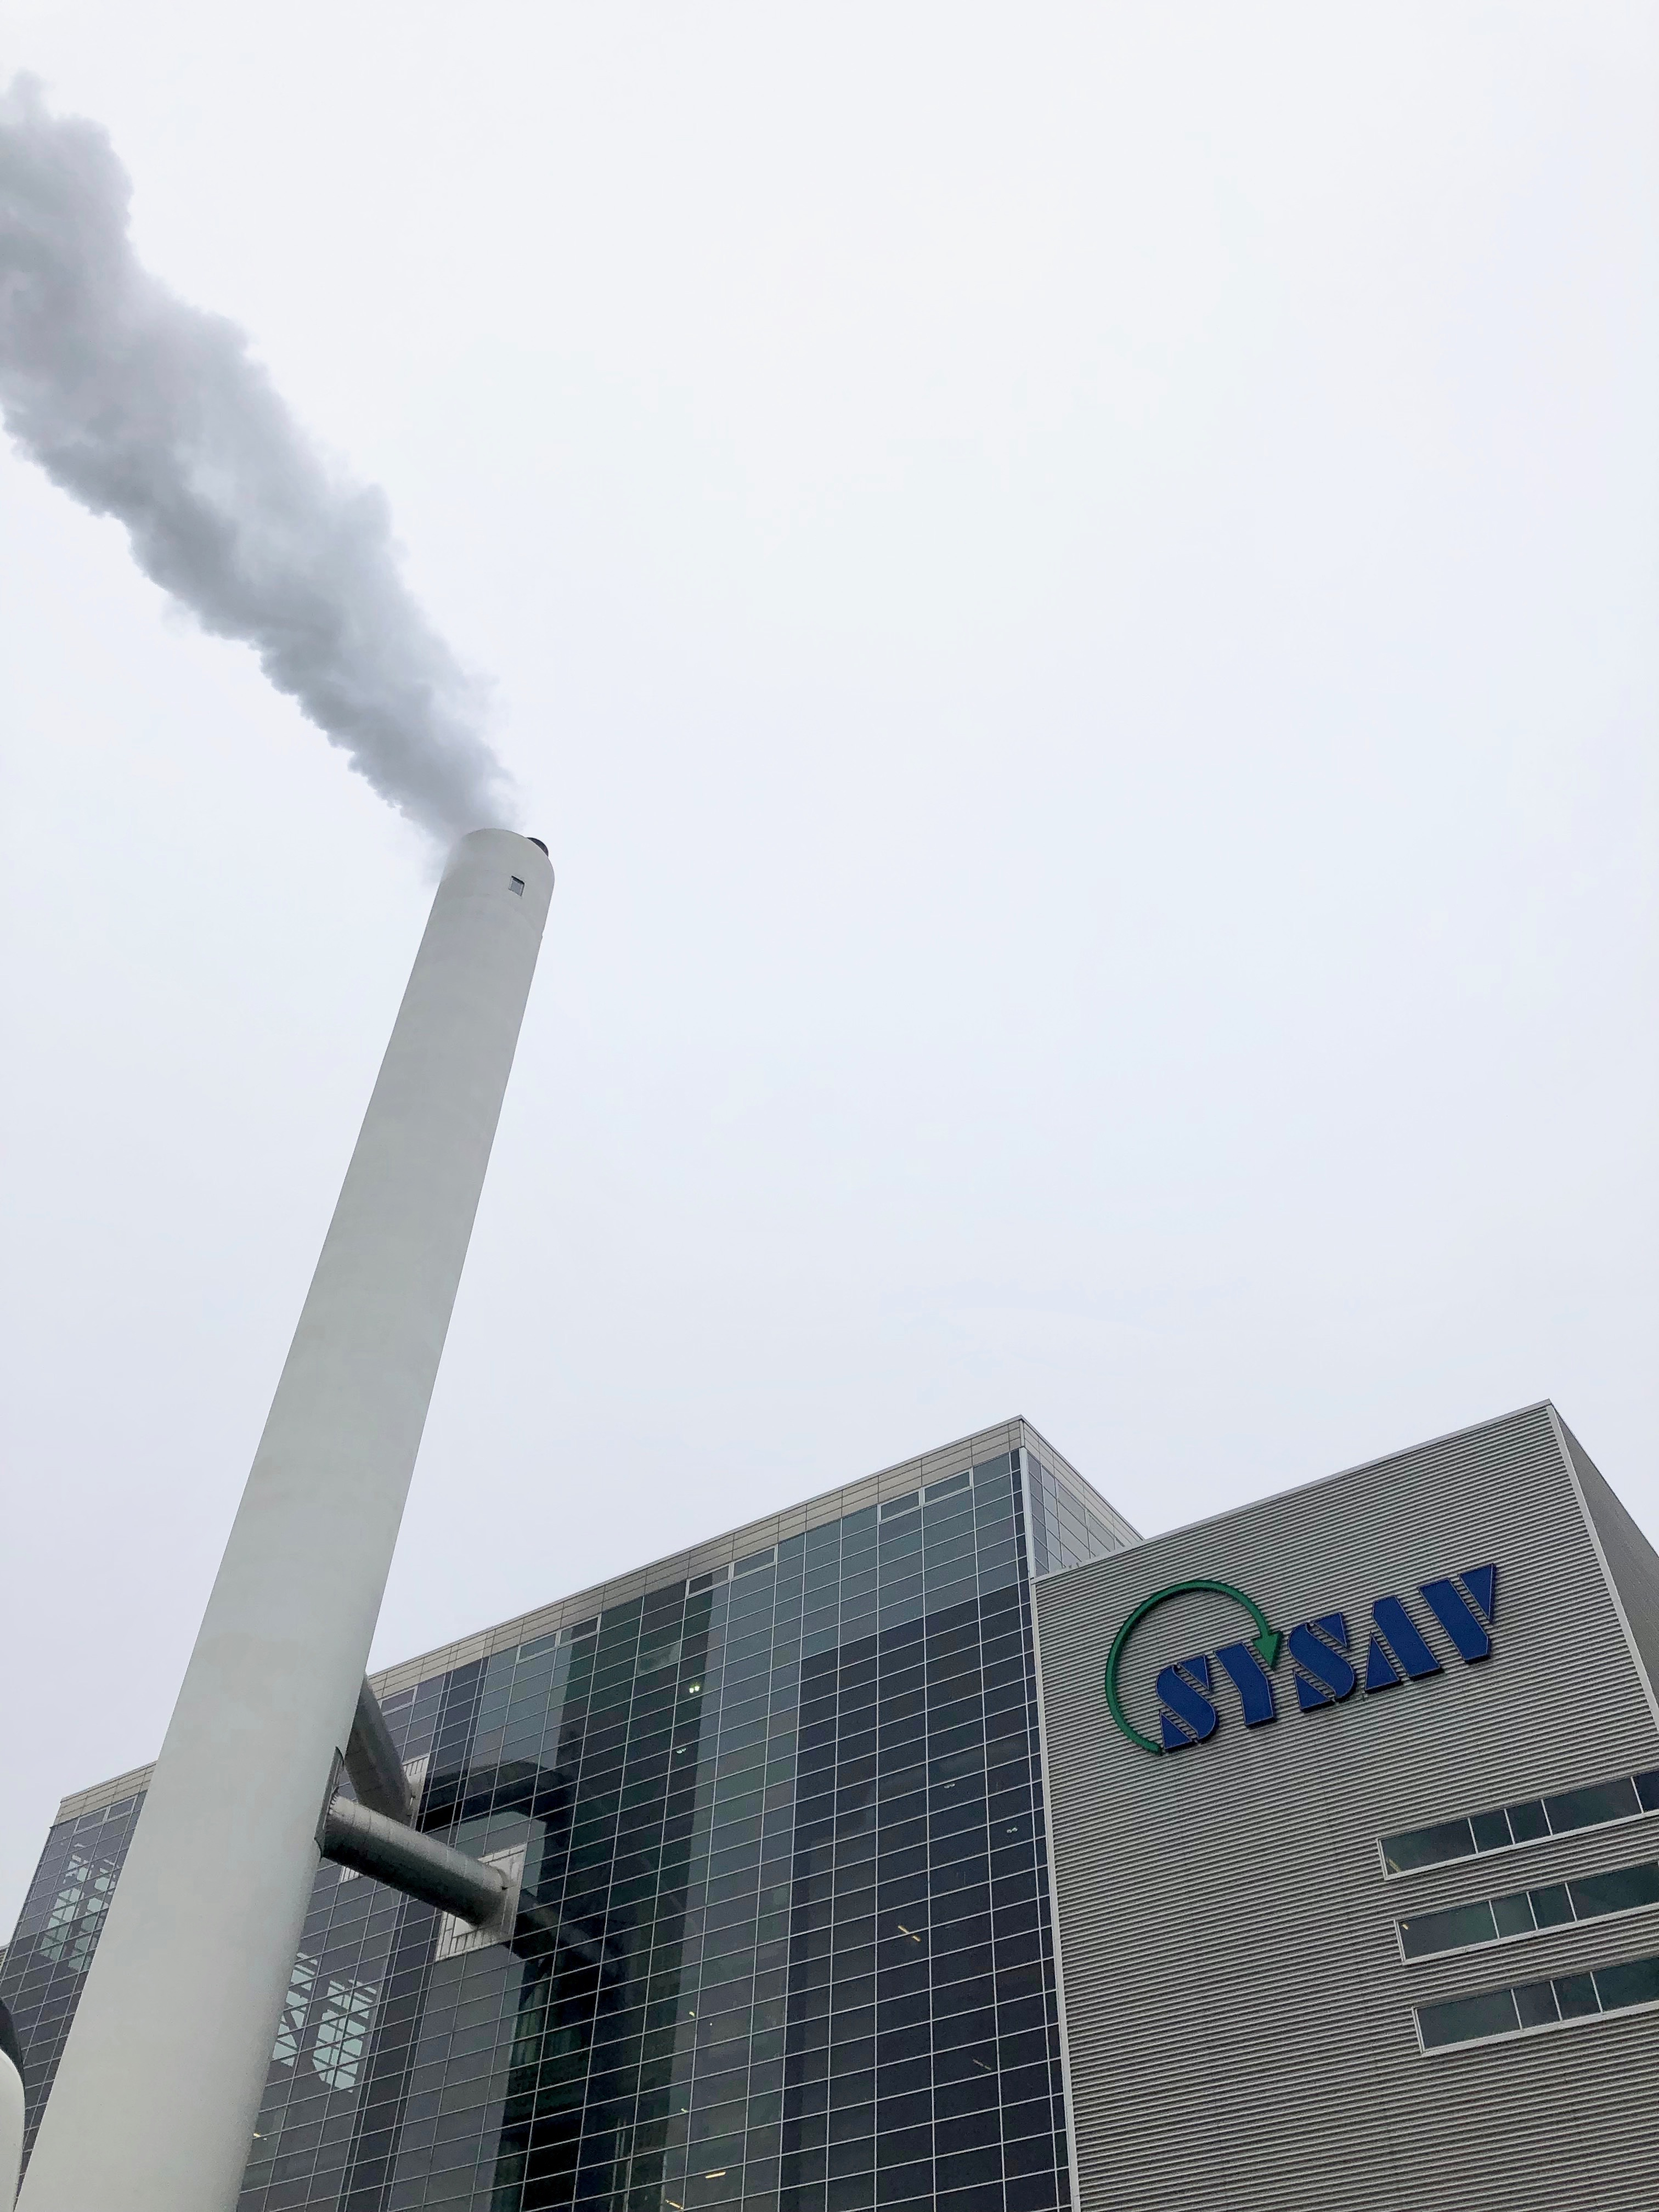 Exterior of waste-to-energy plant with prevalent smoke stack.